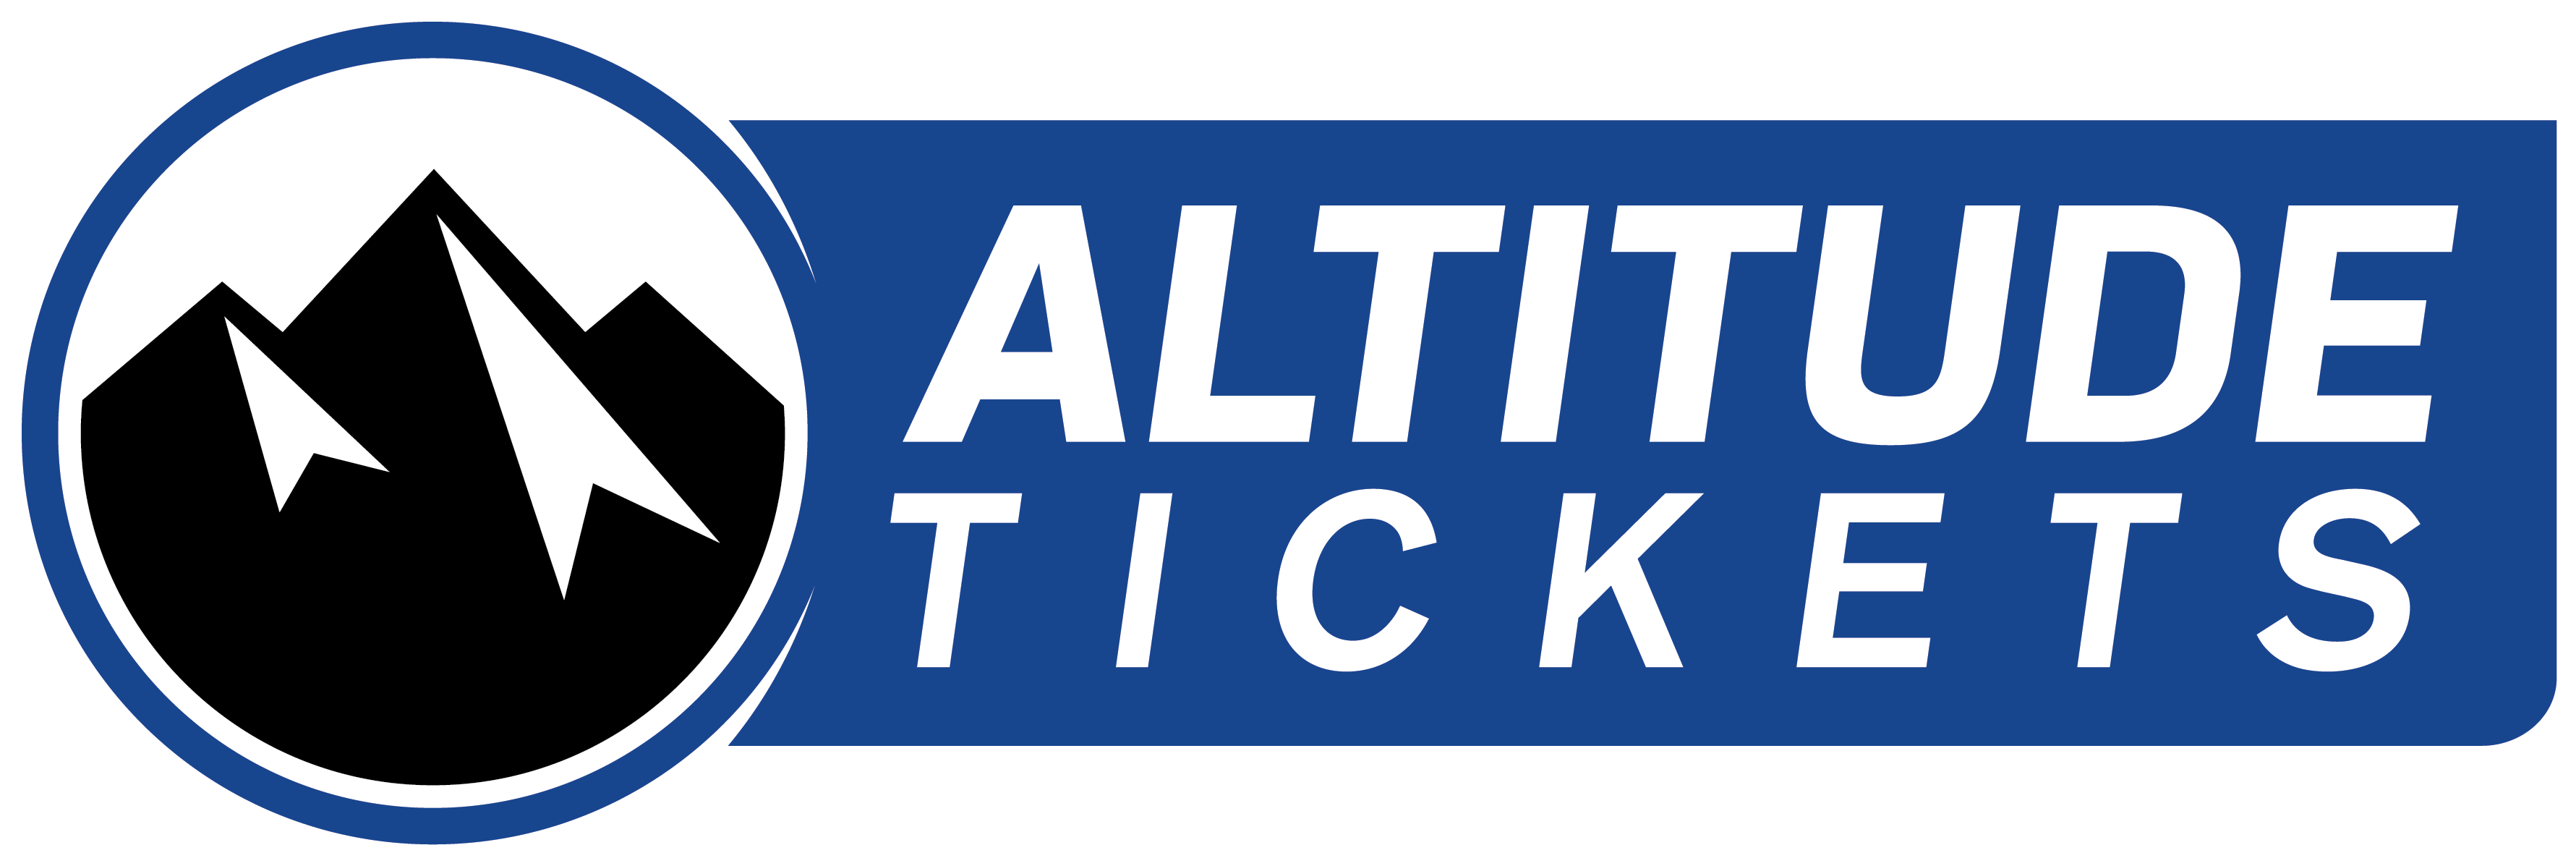 Altitude Tickets Help Center home page